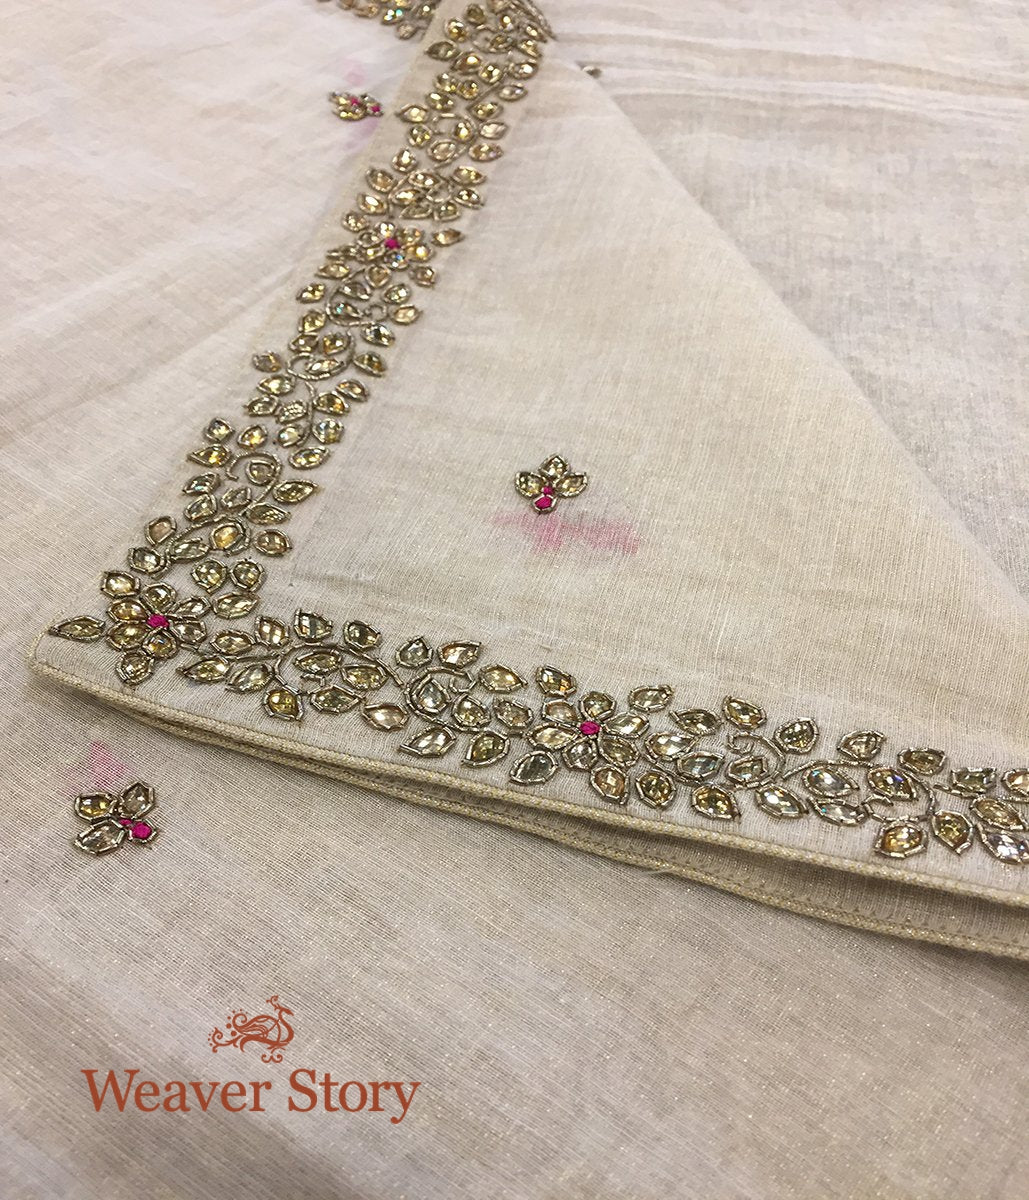 Handwoven Ivory Cotton Tissue Dupatta with Kundan and Zardozi Work